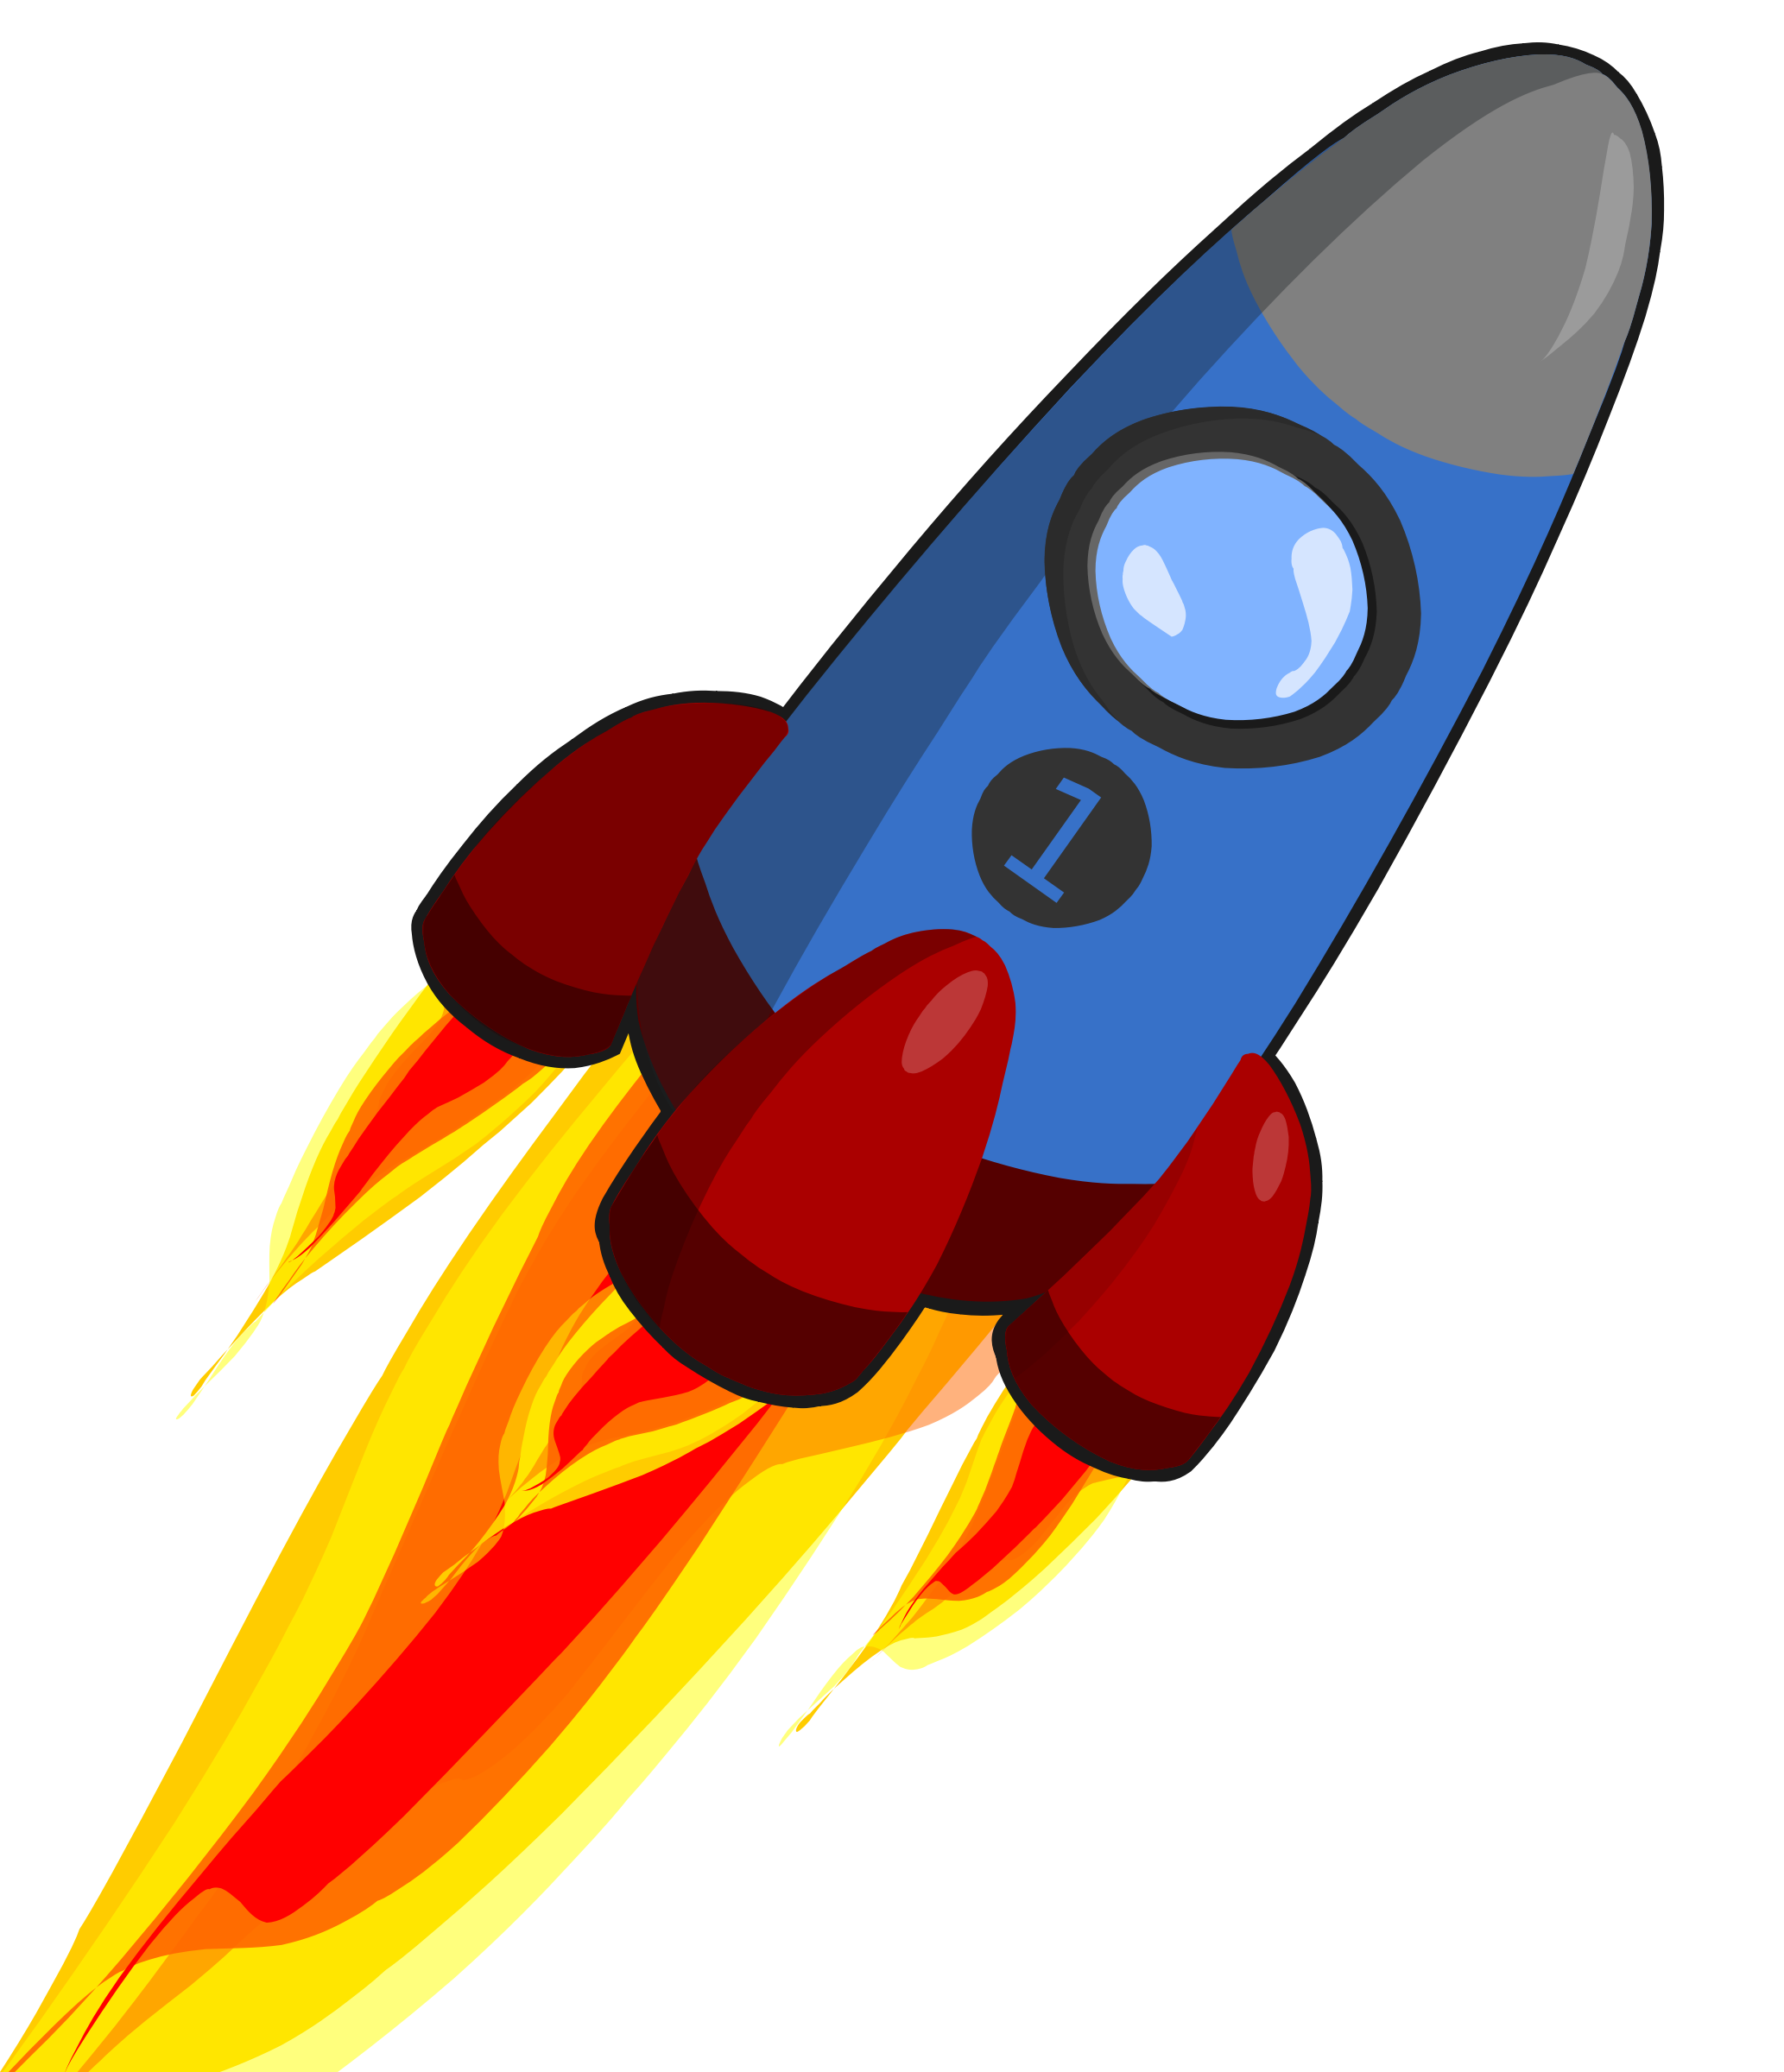 clipart animation of rocket blue and red